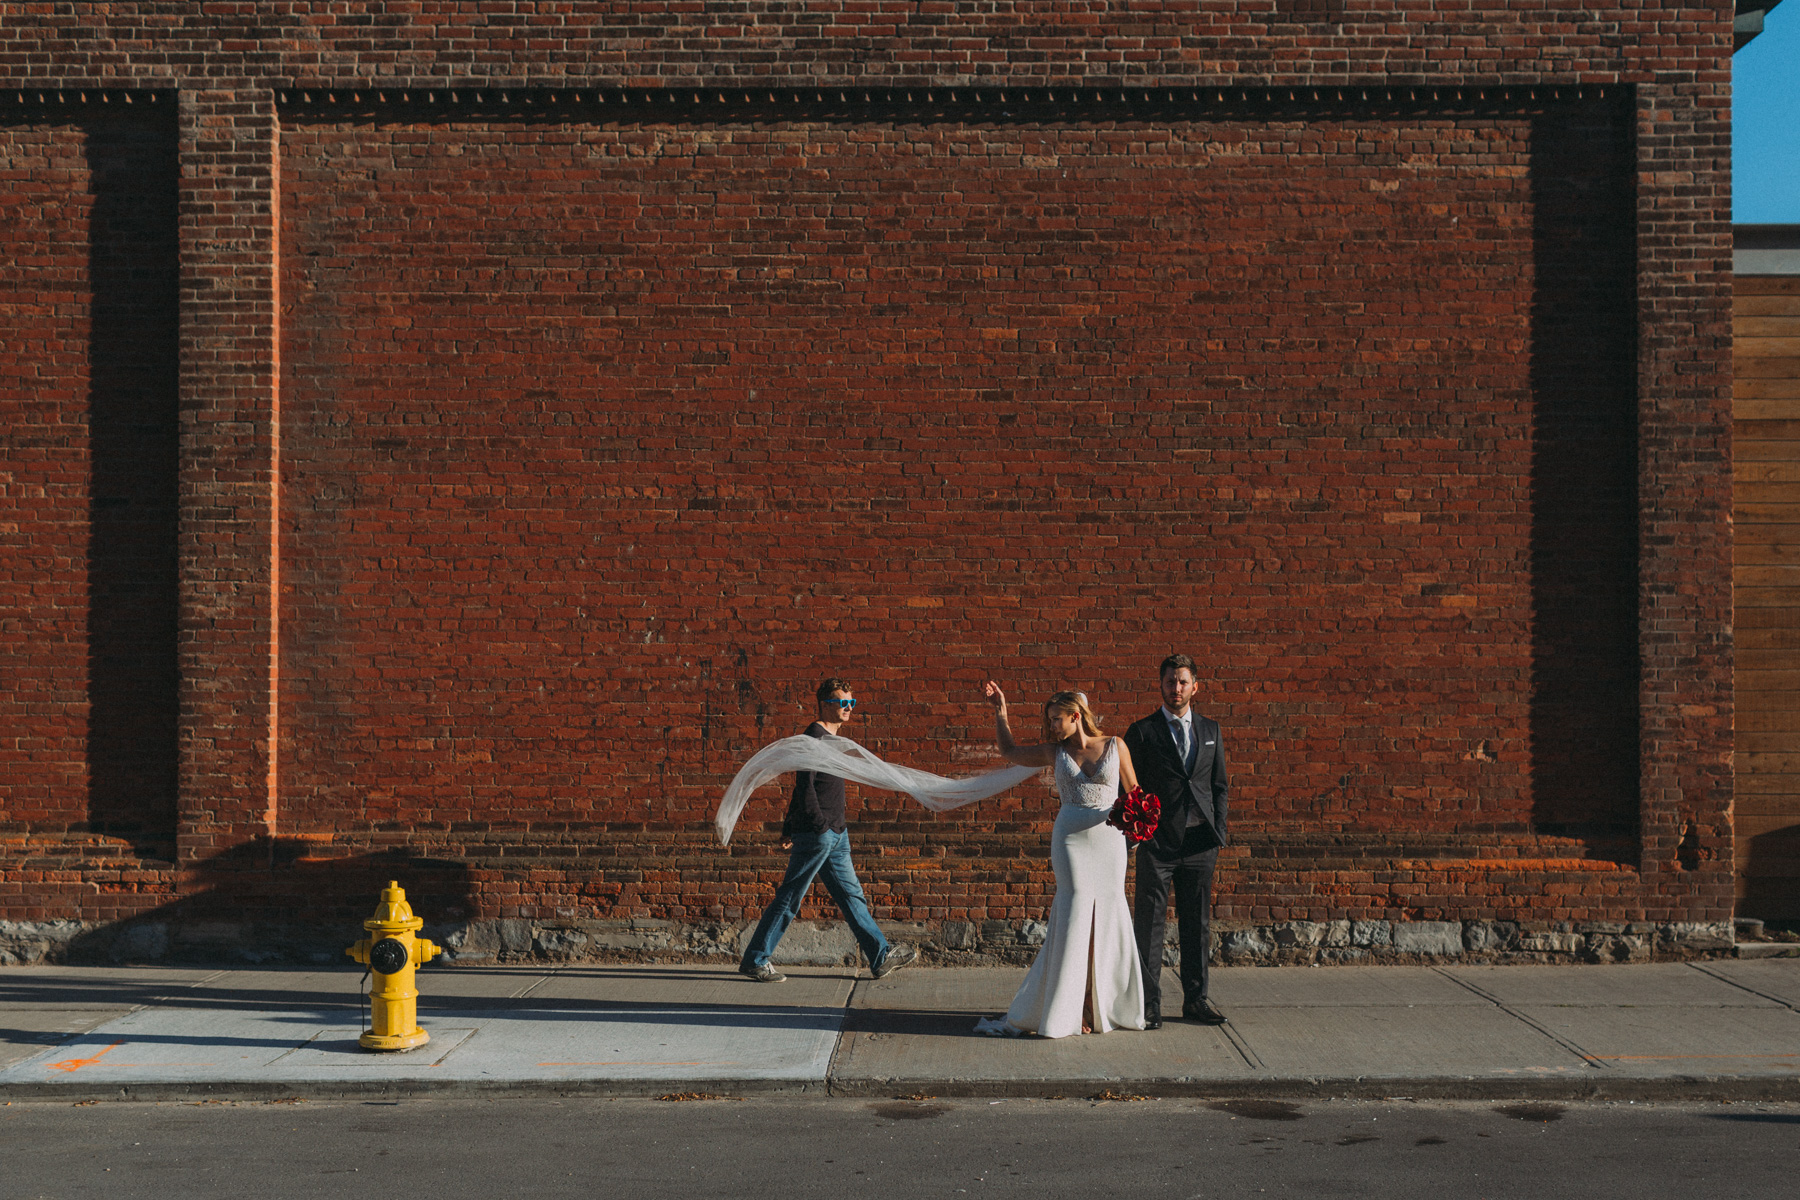 Thompson-Landry-Gallery-wedding-photos-Toronto-by-Sam-Wong-of-Artanis-Collective-Polina-Zarko_0039.jpg